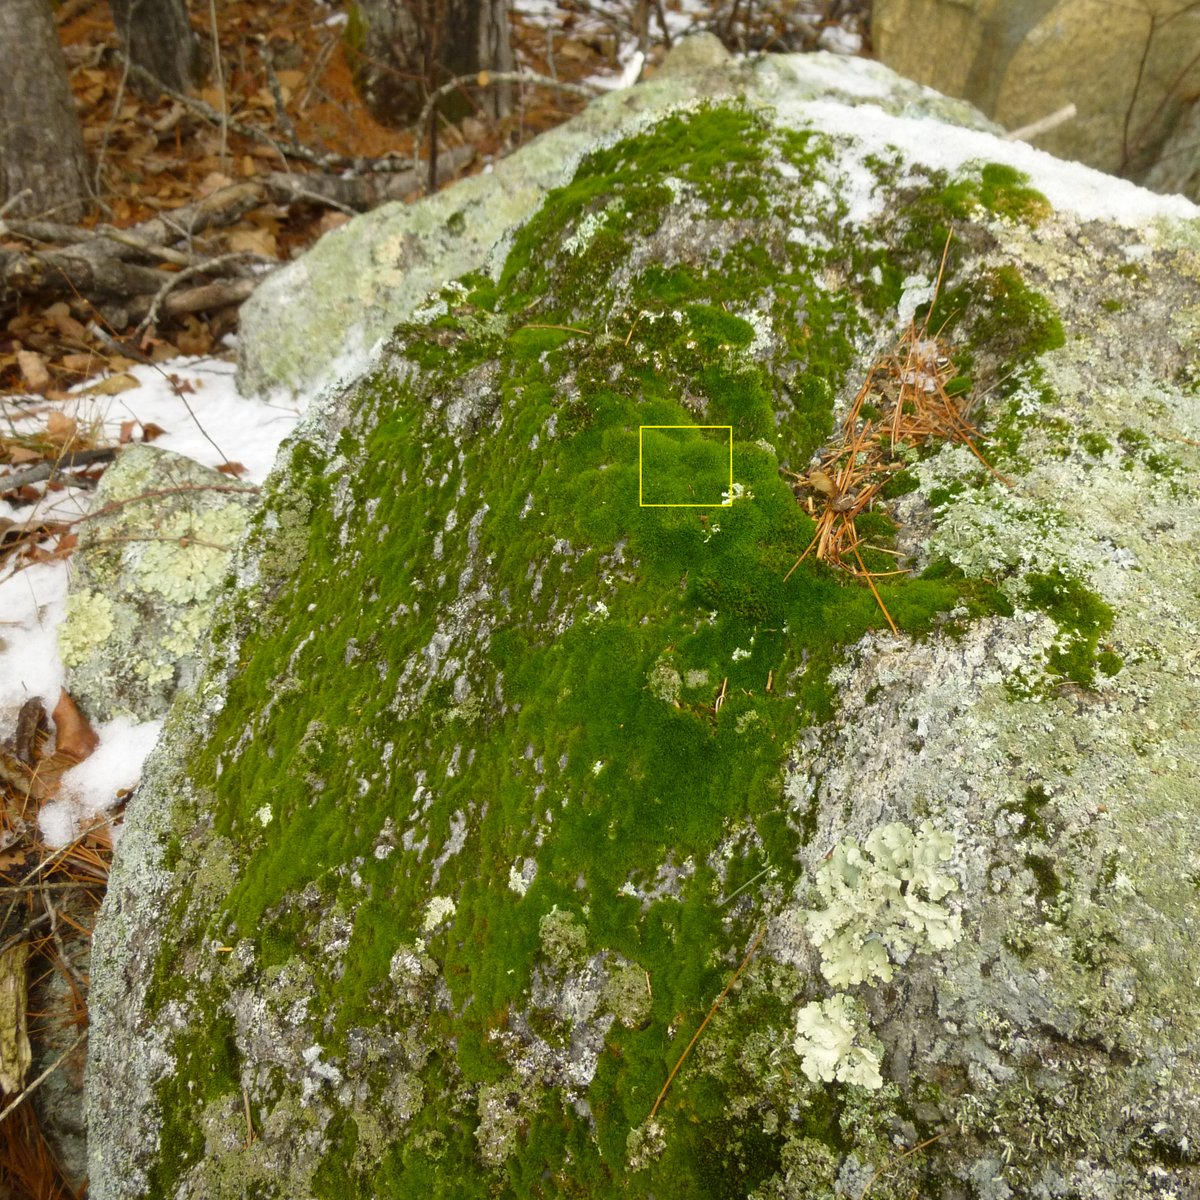 11. Moss Covered Boulder